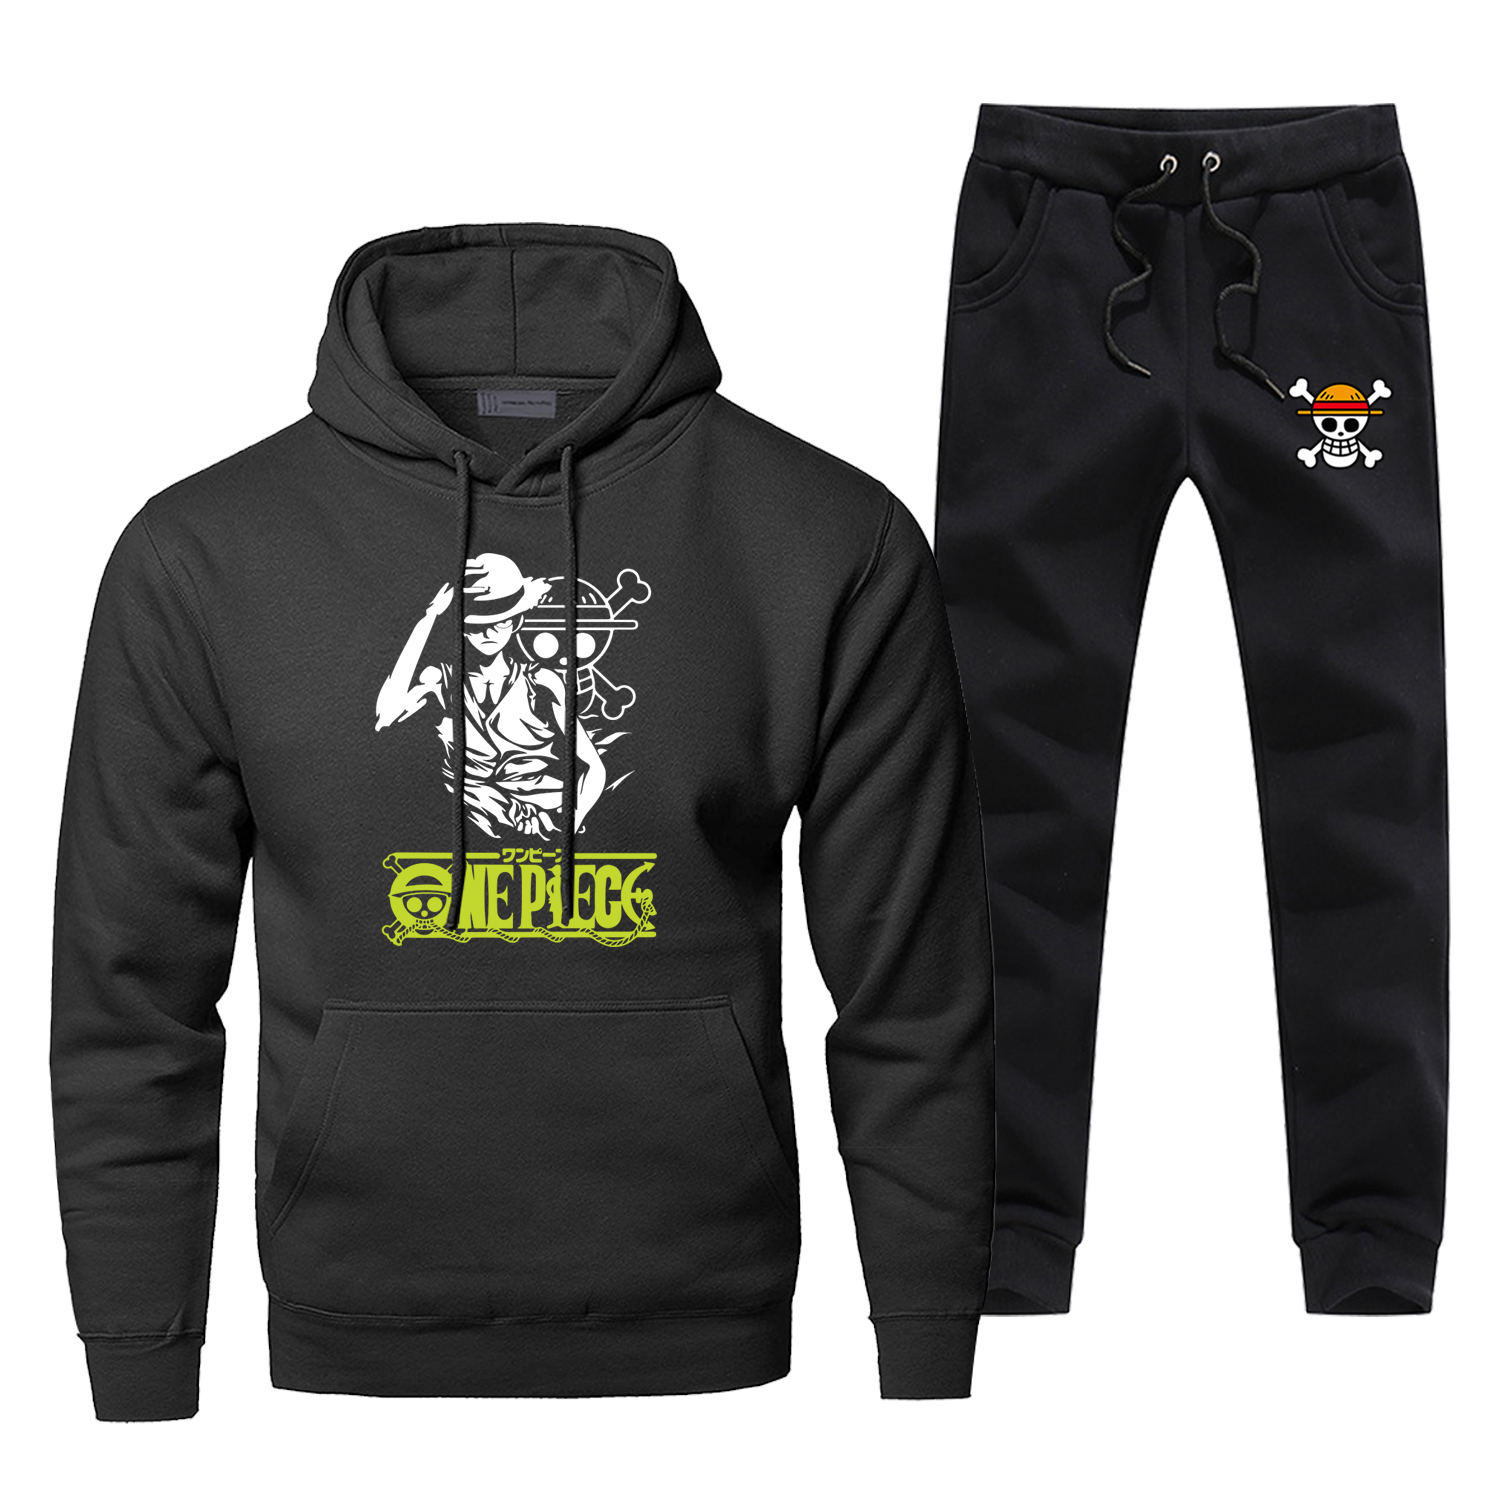 Fashion One Piece Luffy Japanese Anime Hoodies Pants 2pcs Sets Men Sweatshirt Pirate Skull Tracksuit Winter Fleece Sportswear